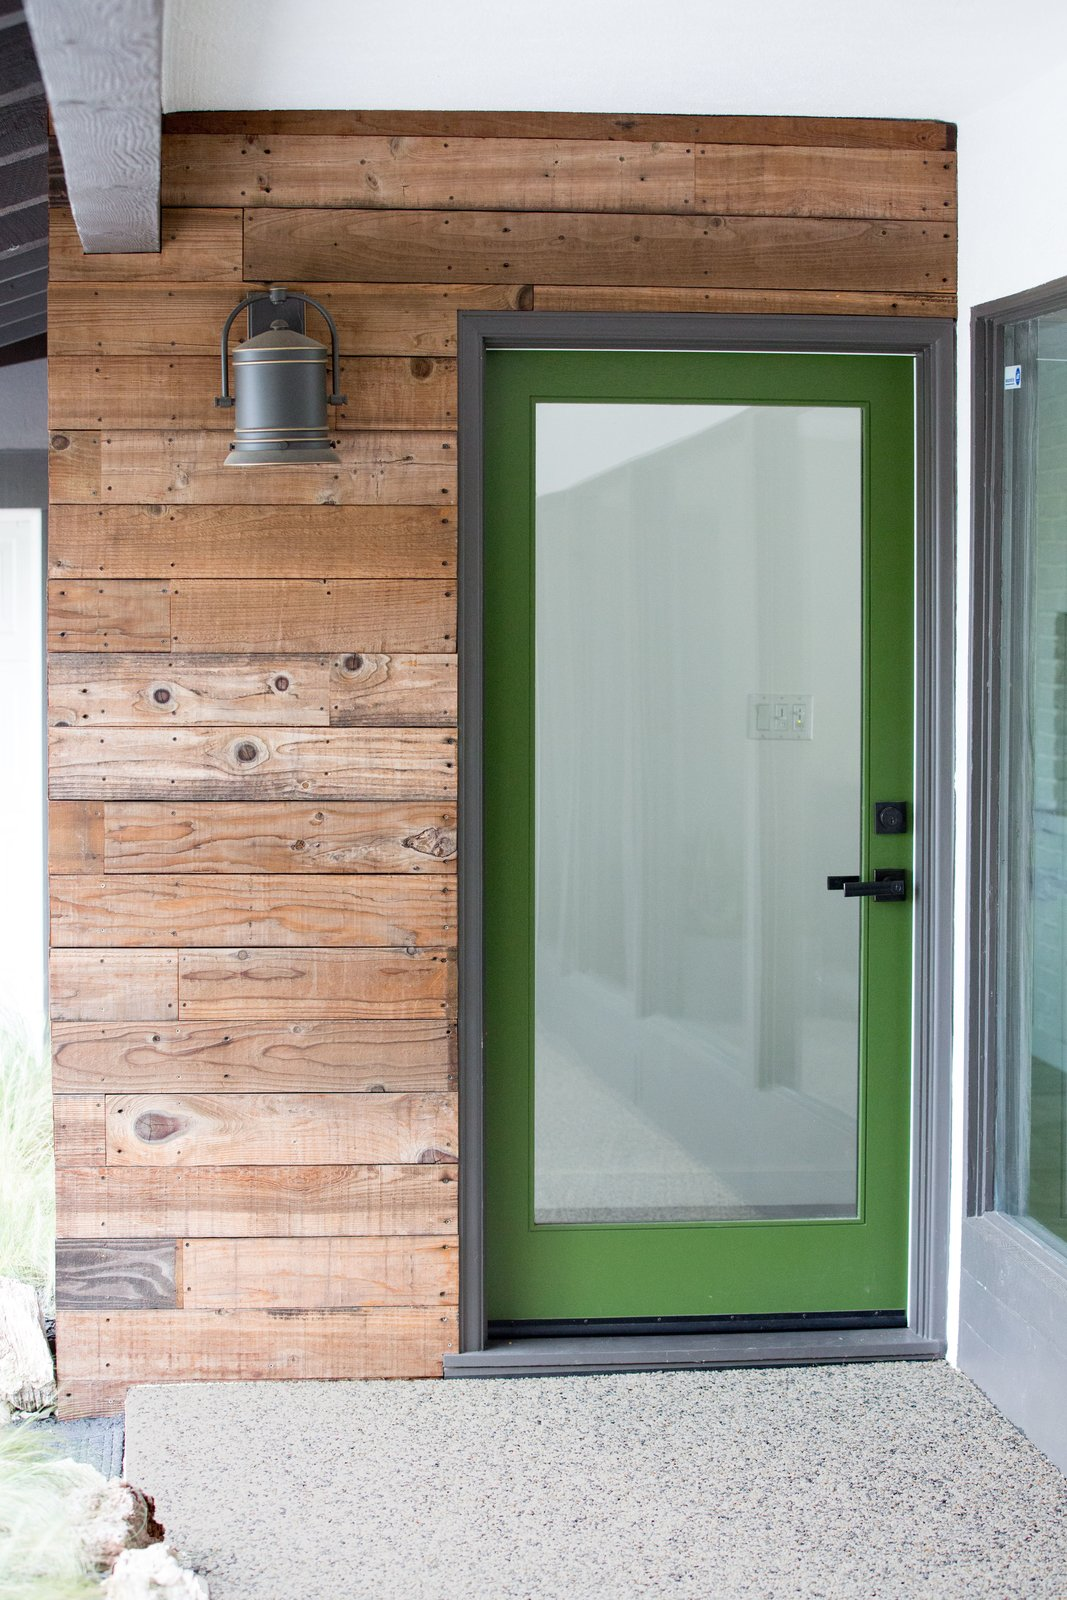 A grass green front door draws from the verdant foliage blanketing the 38,000 sq. ft. hillside property. Its earthy tone complements the rich warmth of reclaimed fence wood that finds new life as siding. Tagged: Front Yard, Boulders, Small, Hardscapes, Walkways, Stone, Doors, Exterior, Wood, and Swing.  Best Doors Walkways Small Photos from Diablo Ranch